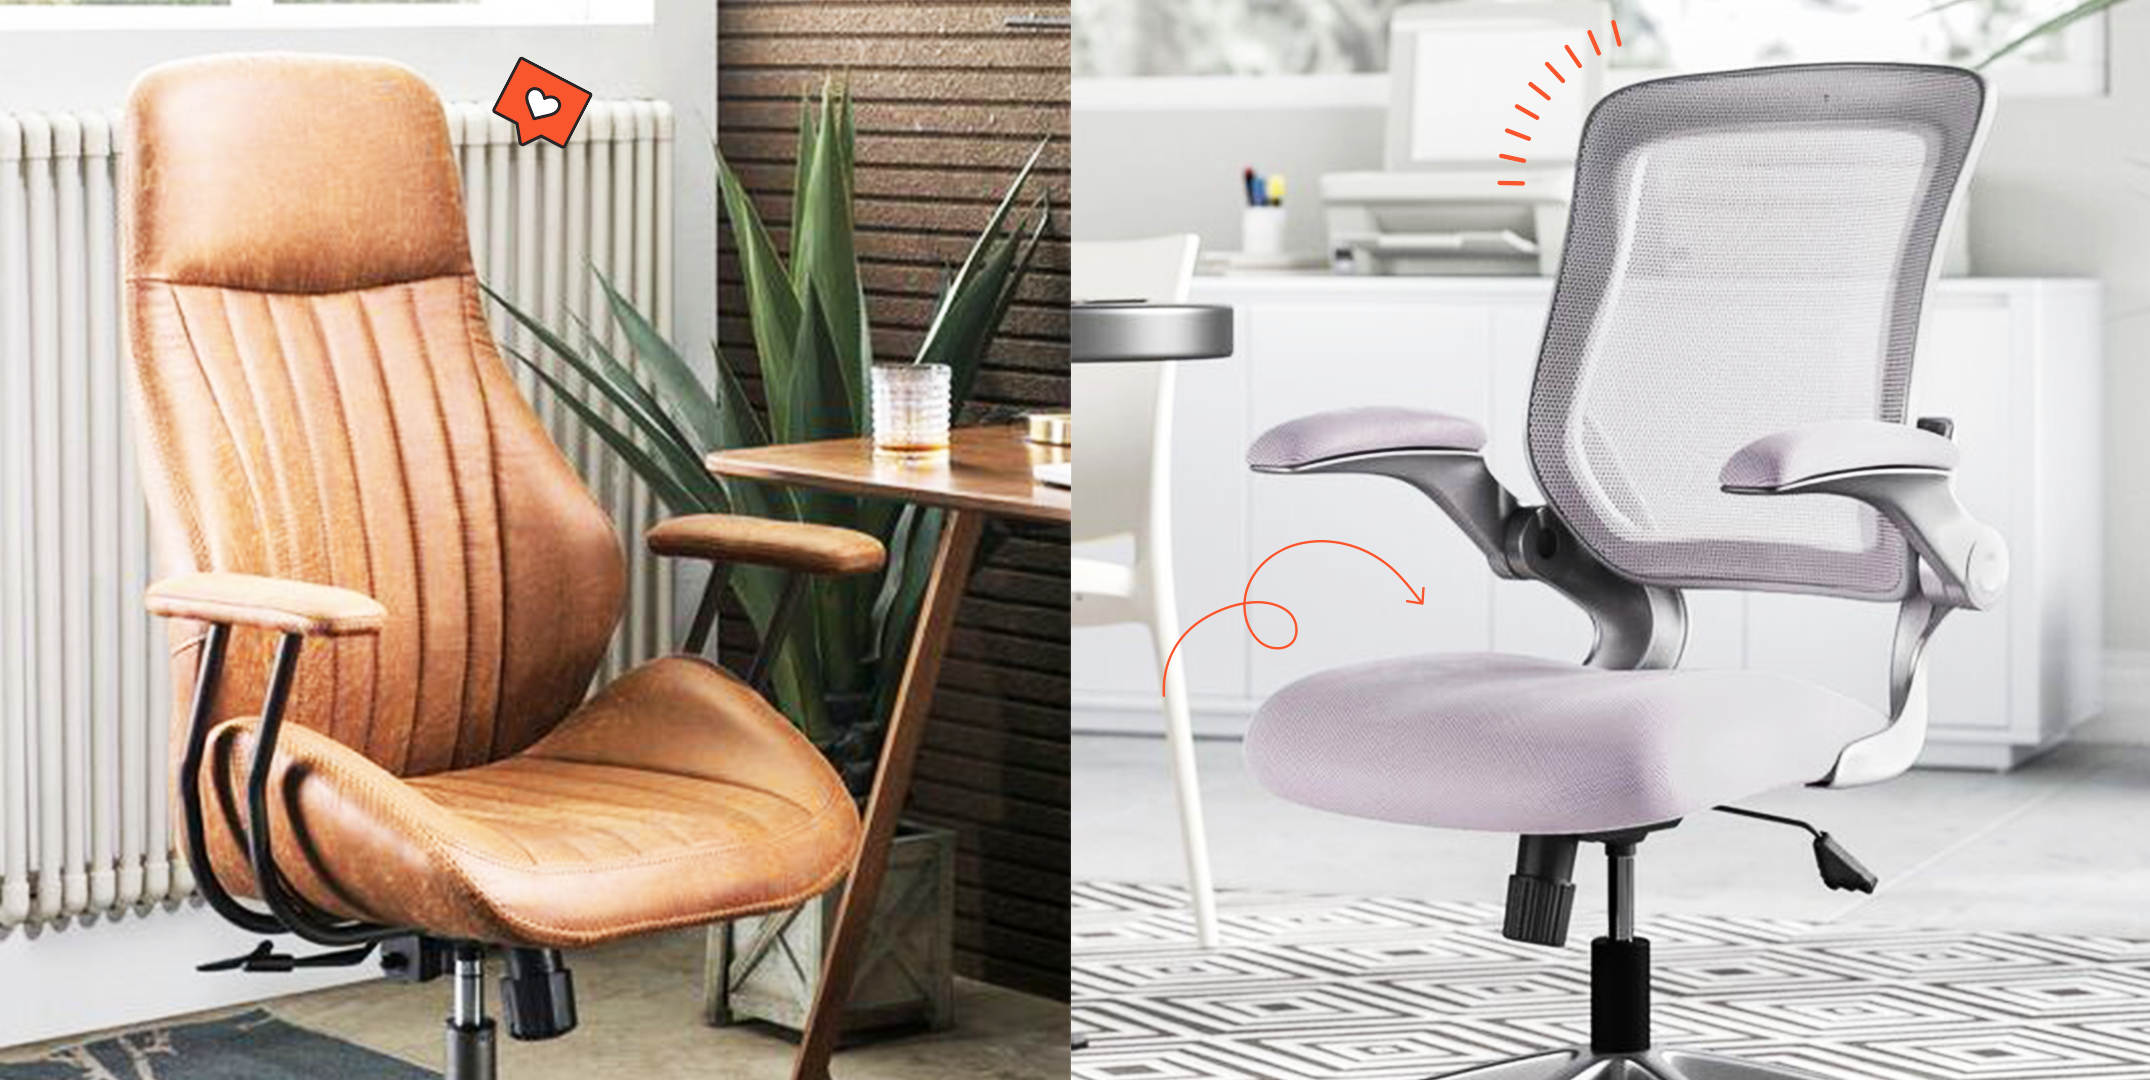 10 Best Ergonomic Office Chairs That Will Save You From So Much Back Pain